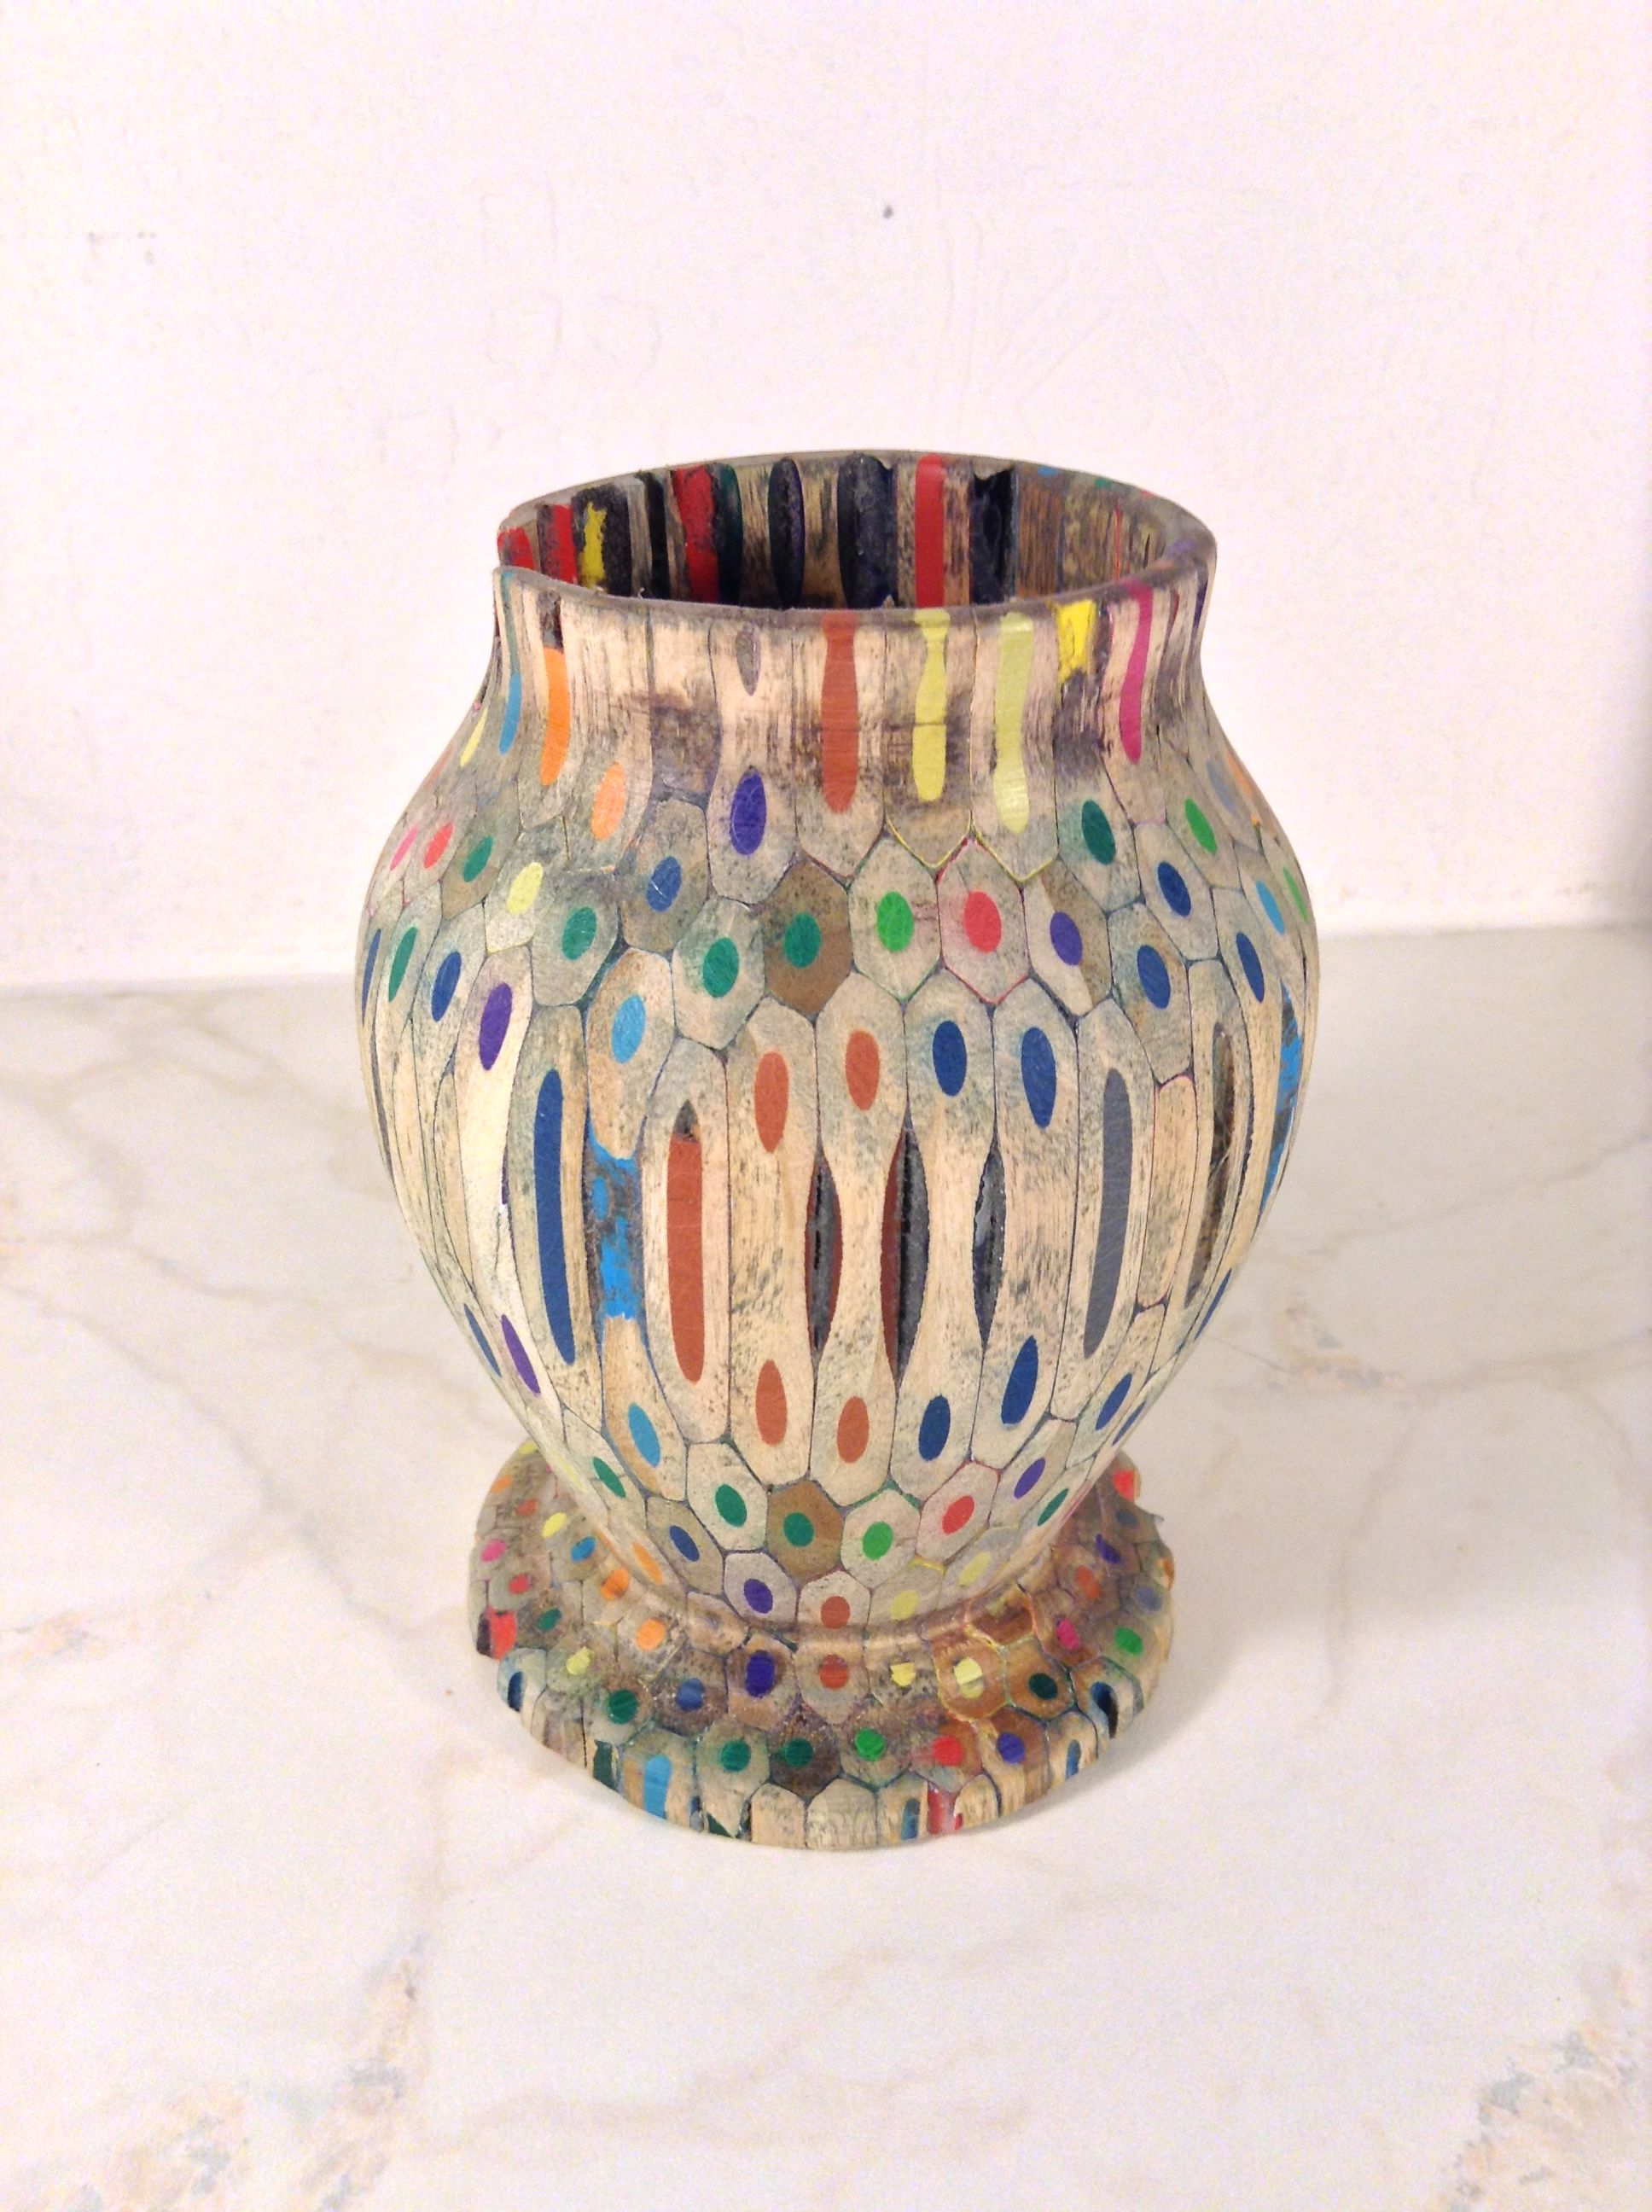 Wood turned colored pencil vase wood colored pencils ansbach wood turned colored pencil vase wood colored pencils ansbach artisans reviewsmspy